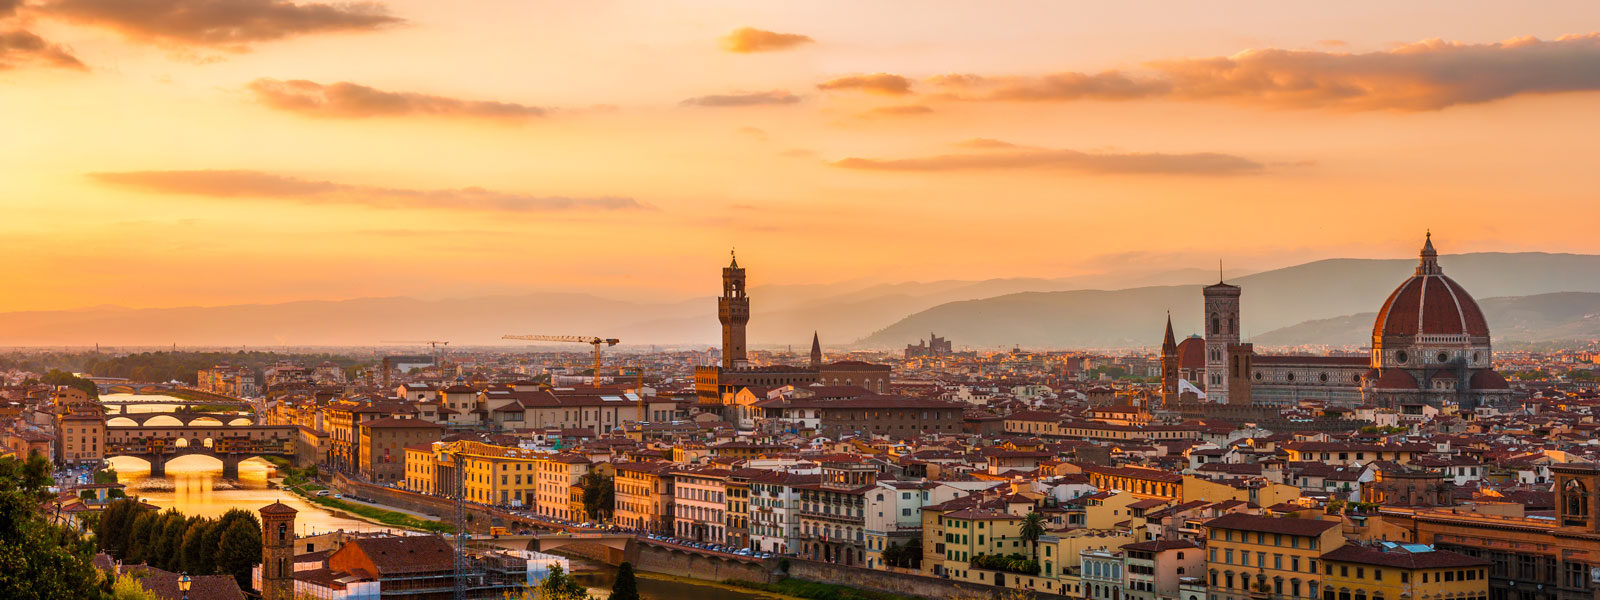 skyline view of Florence, Italy.